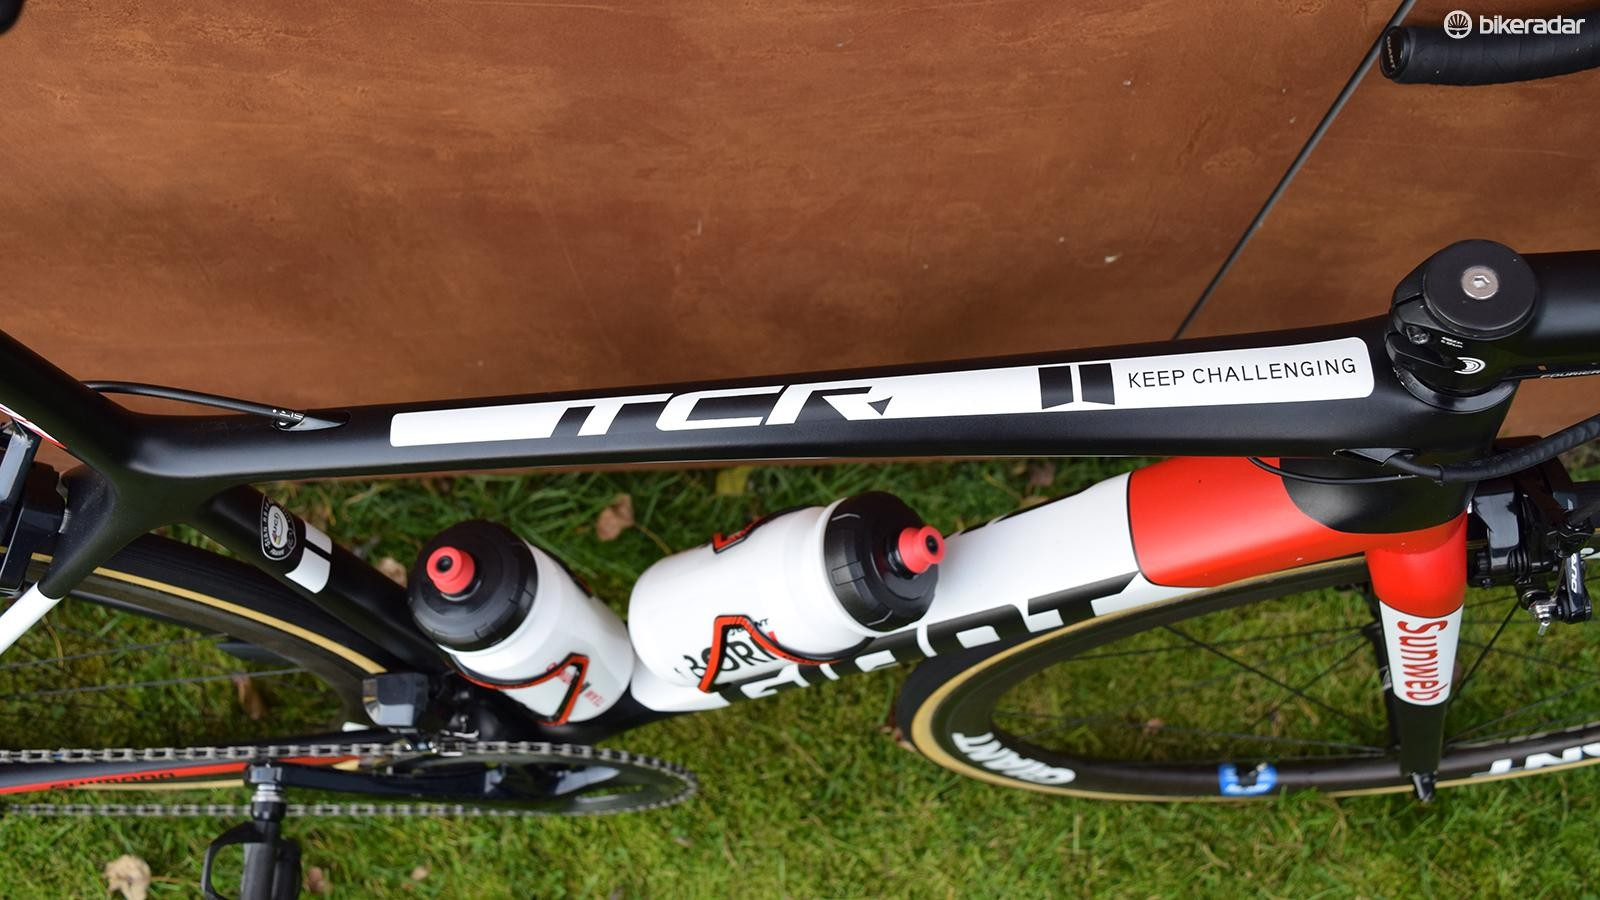 The team's motto adorns the top tube of the bike